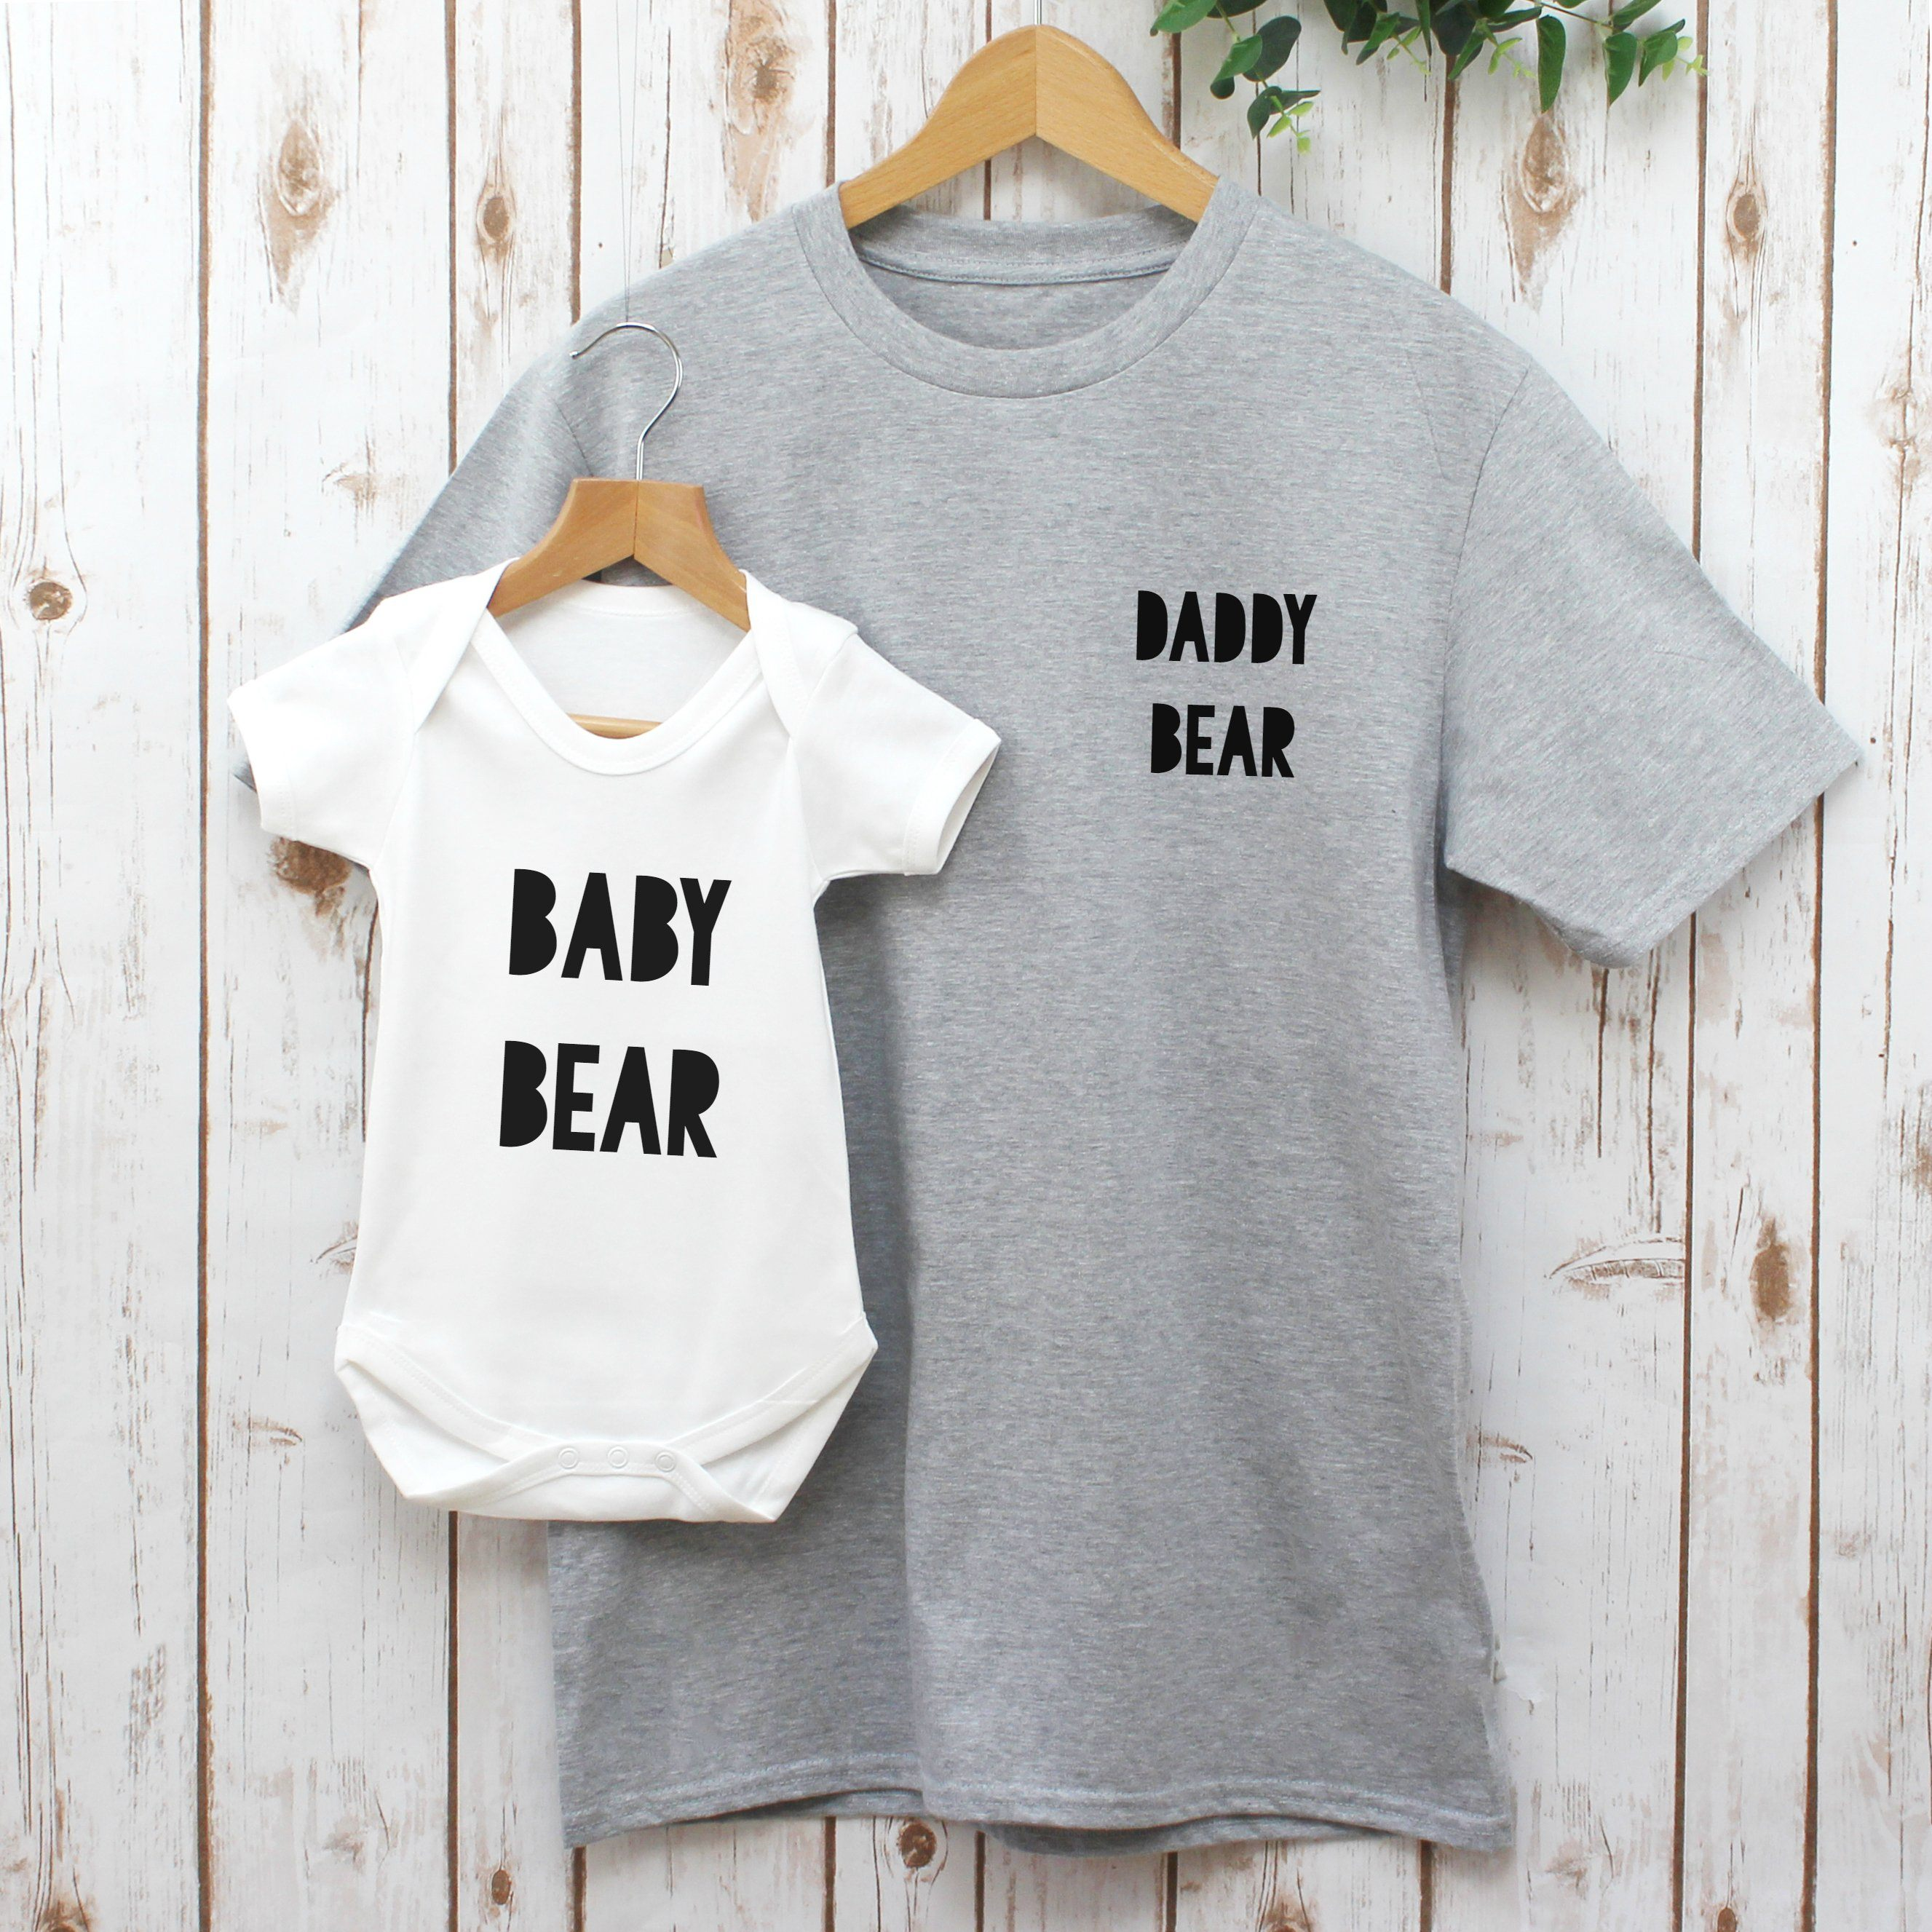 ac37c9eb964 Daddy Bear and Baby Bear T Shirt Set – Betty Bramble